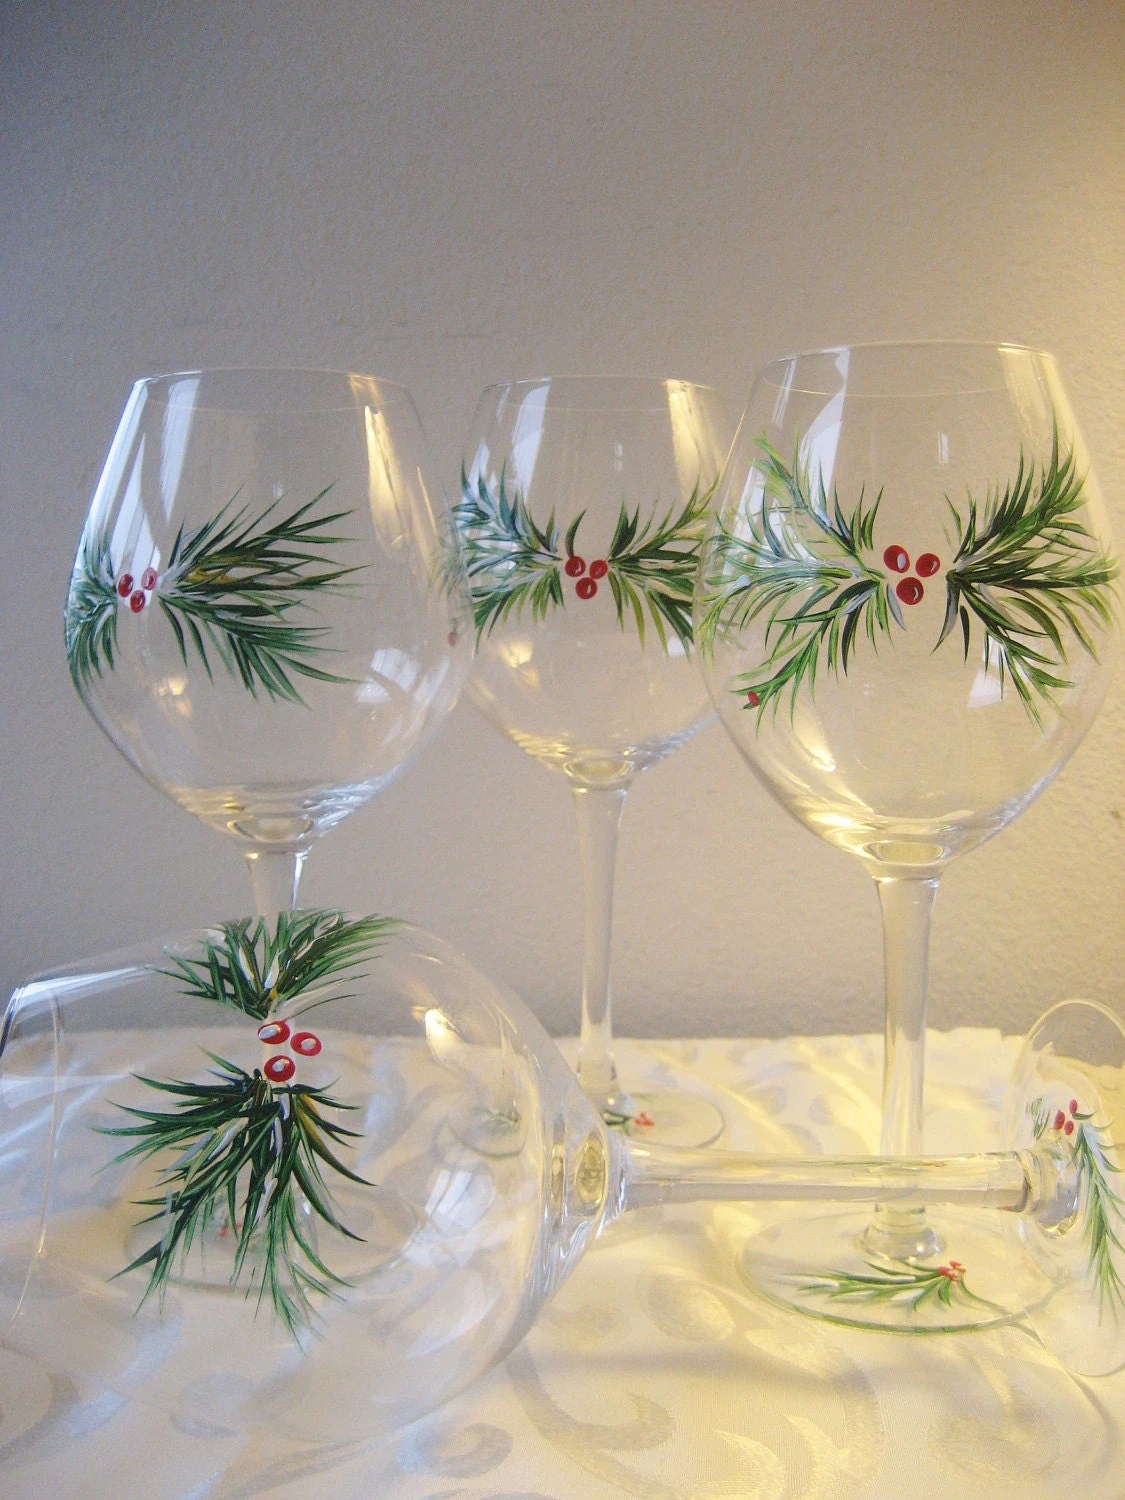 Handpainted Christmas wine glasses set of 2 with berries and